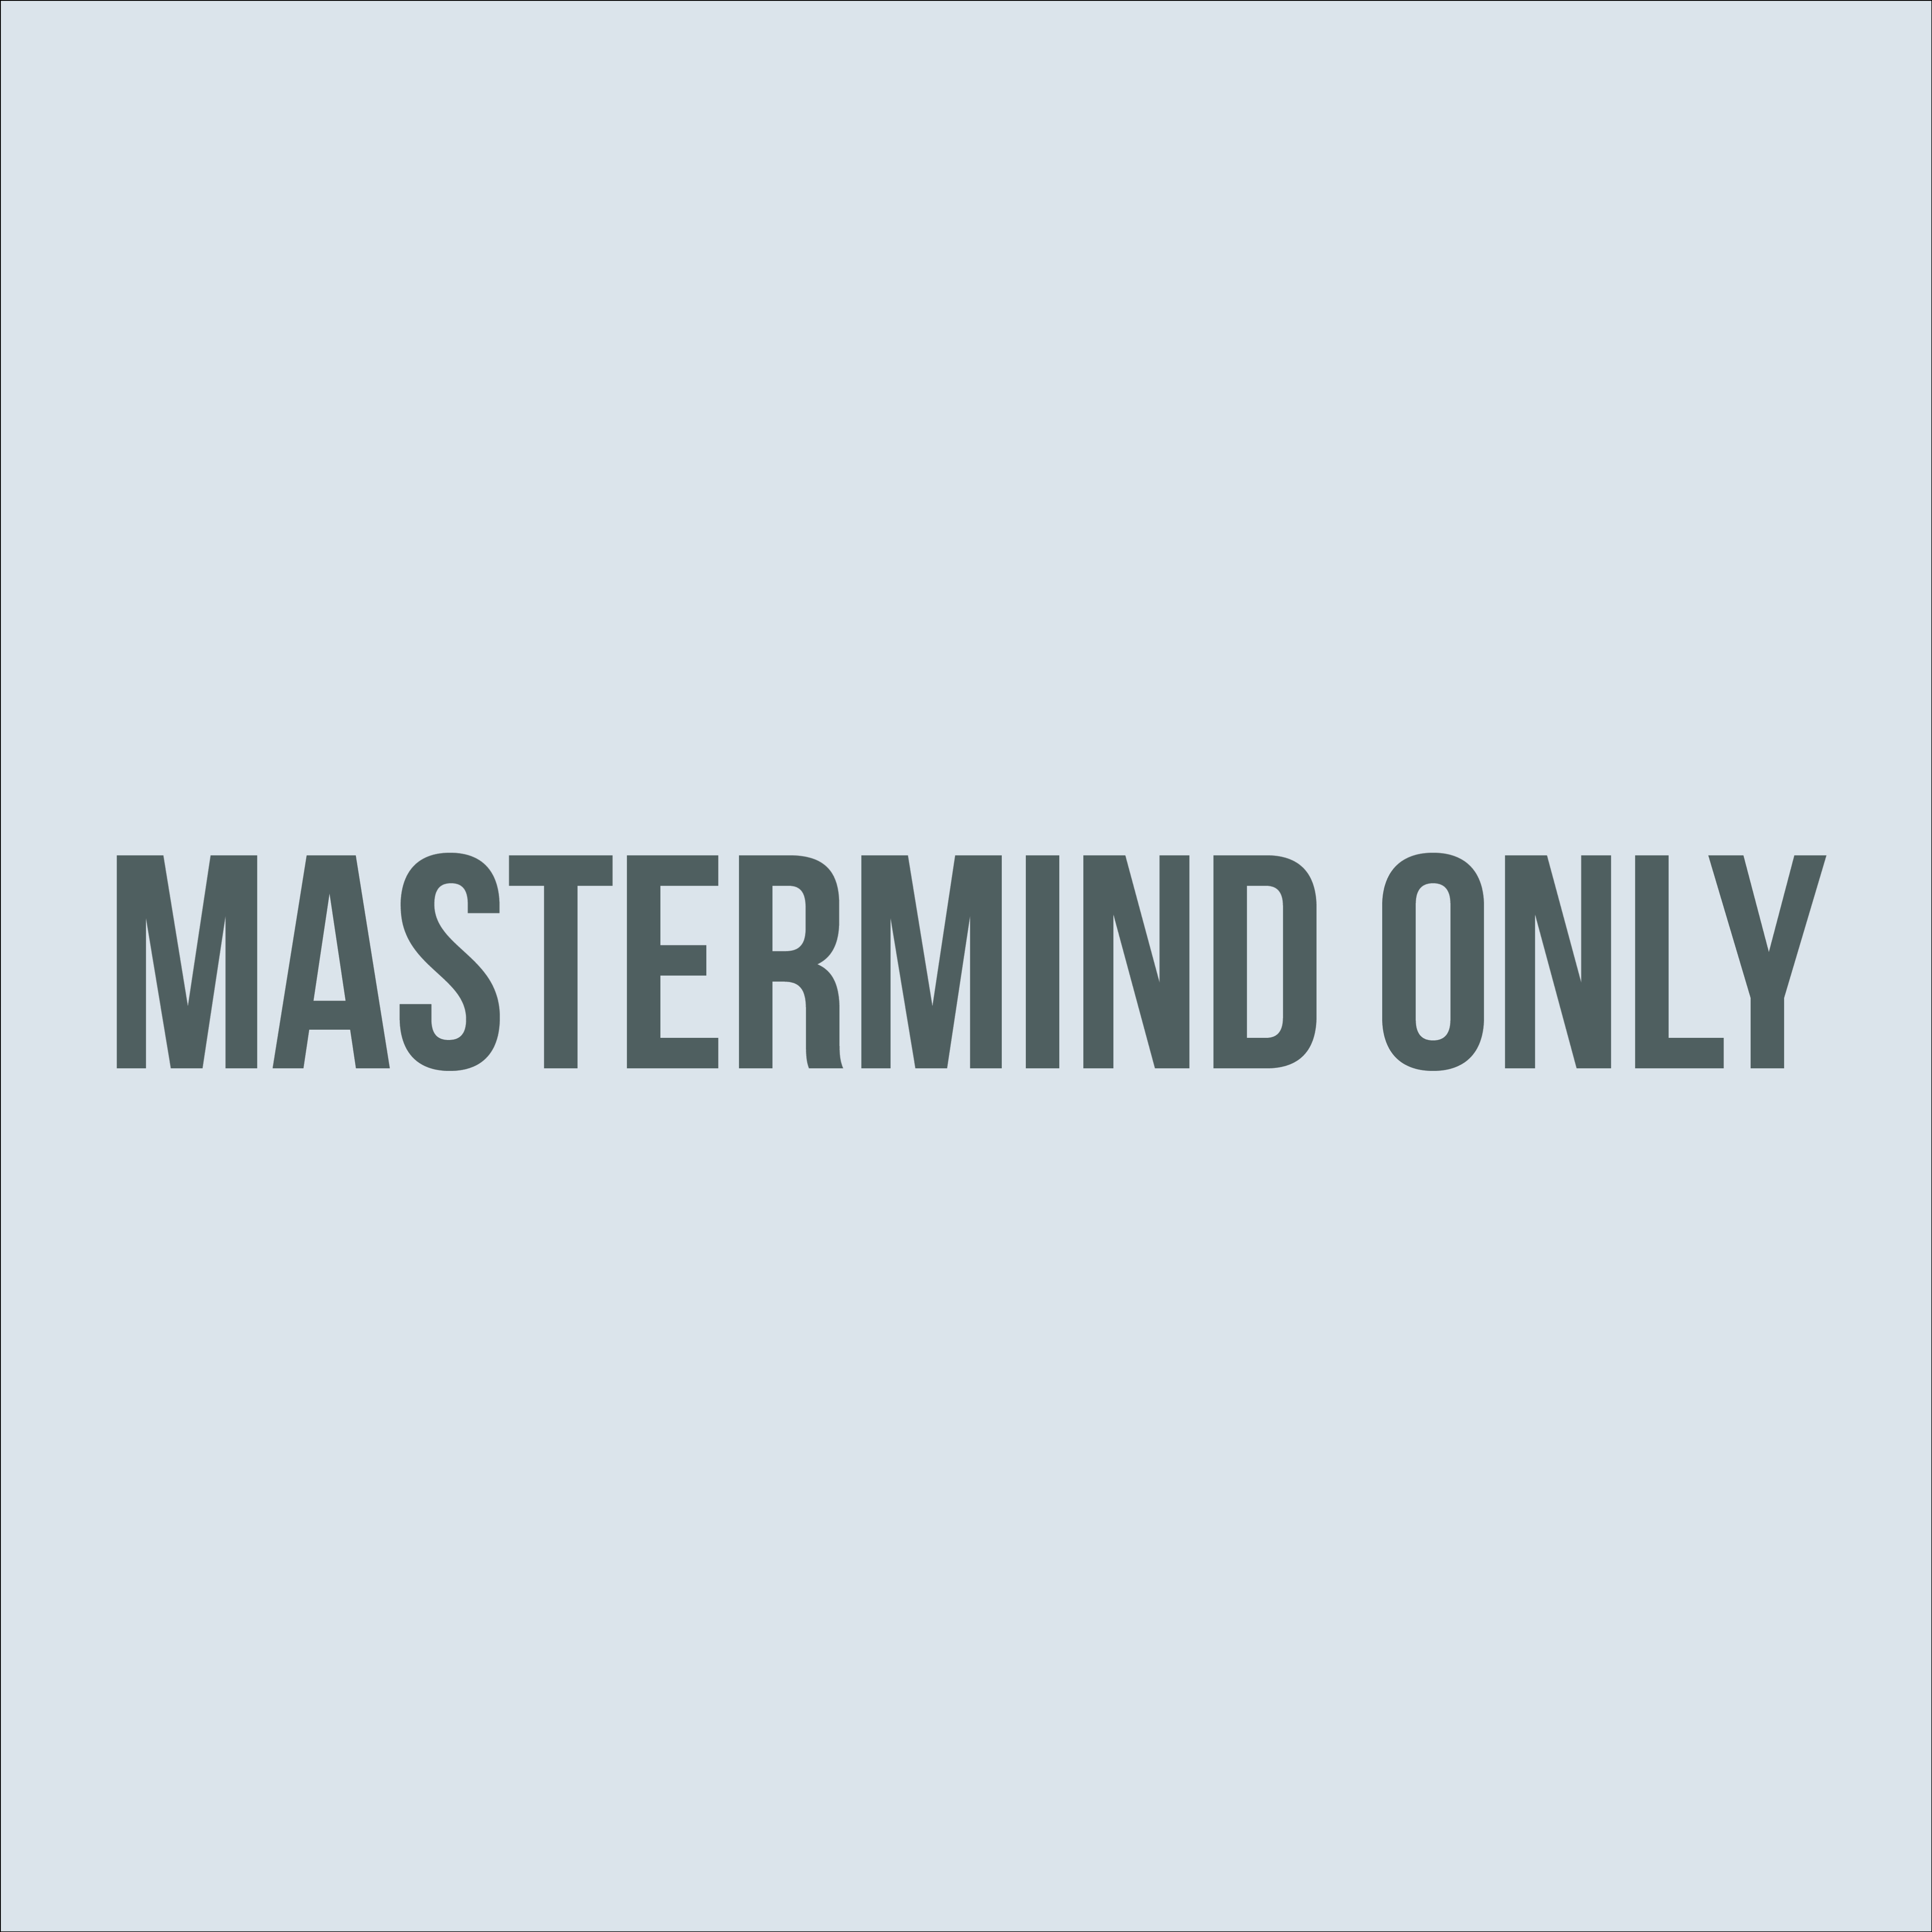 MASTERMIND ONLY